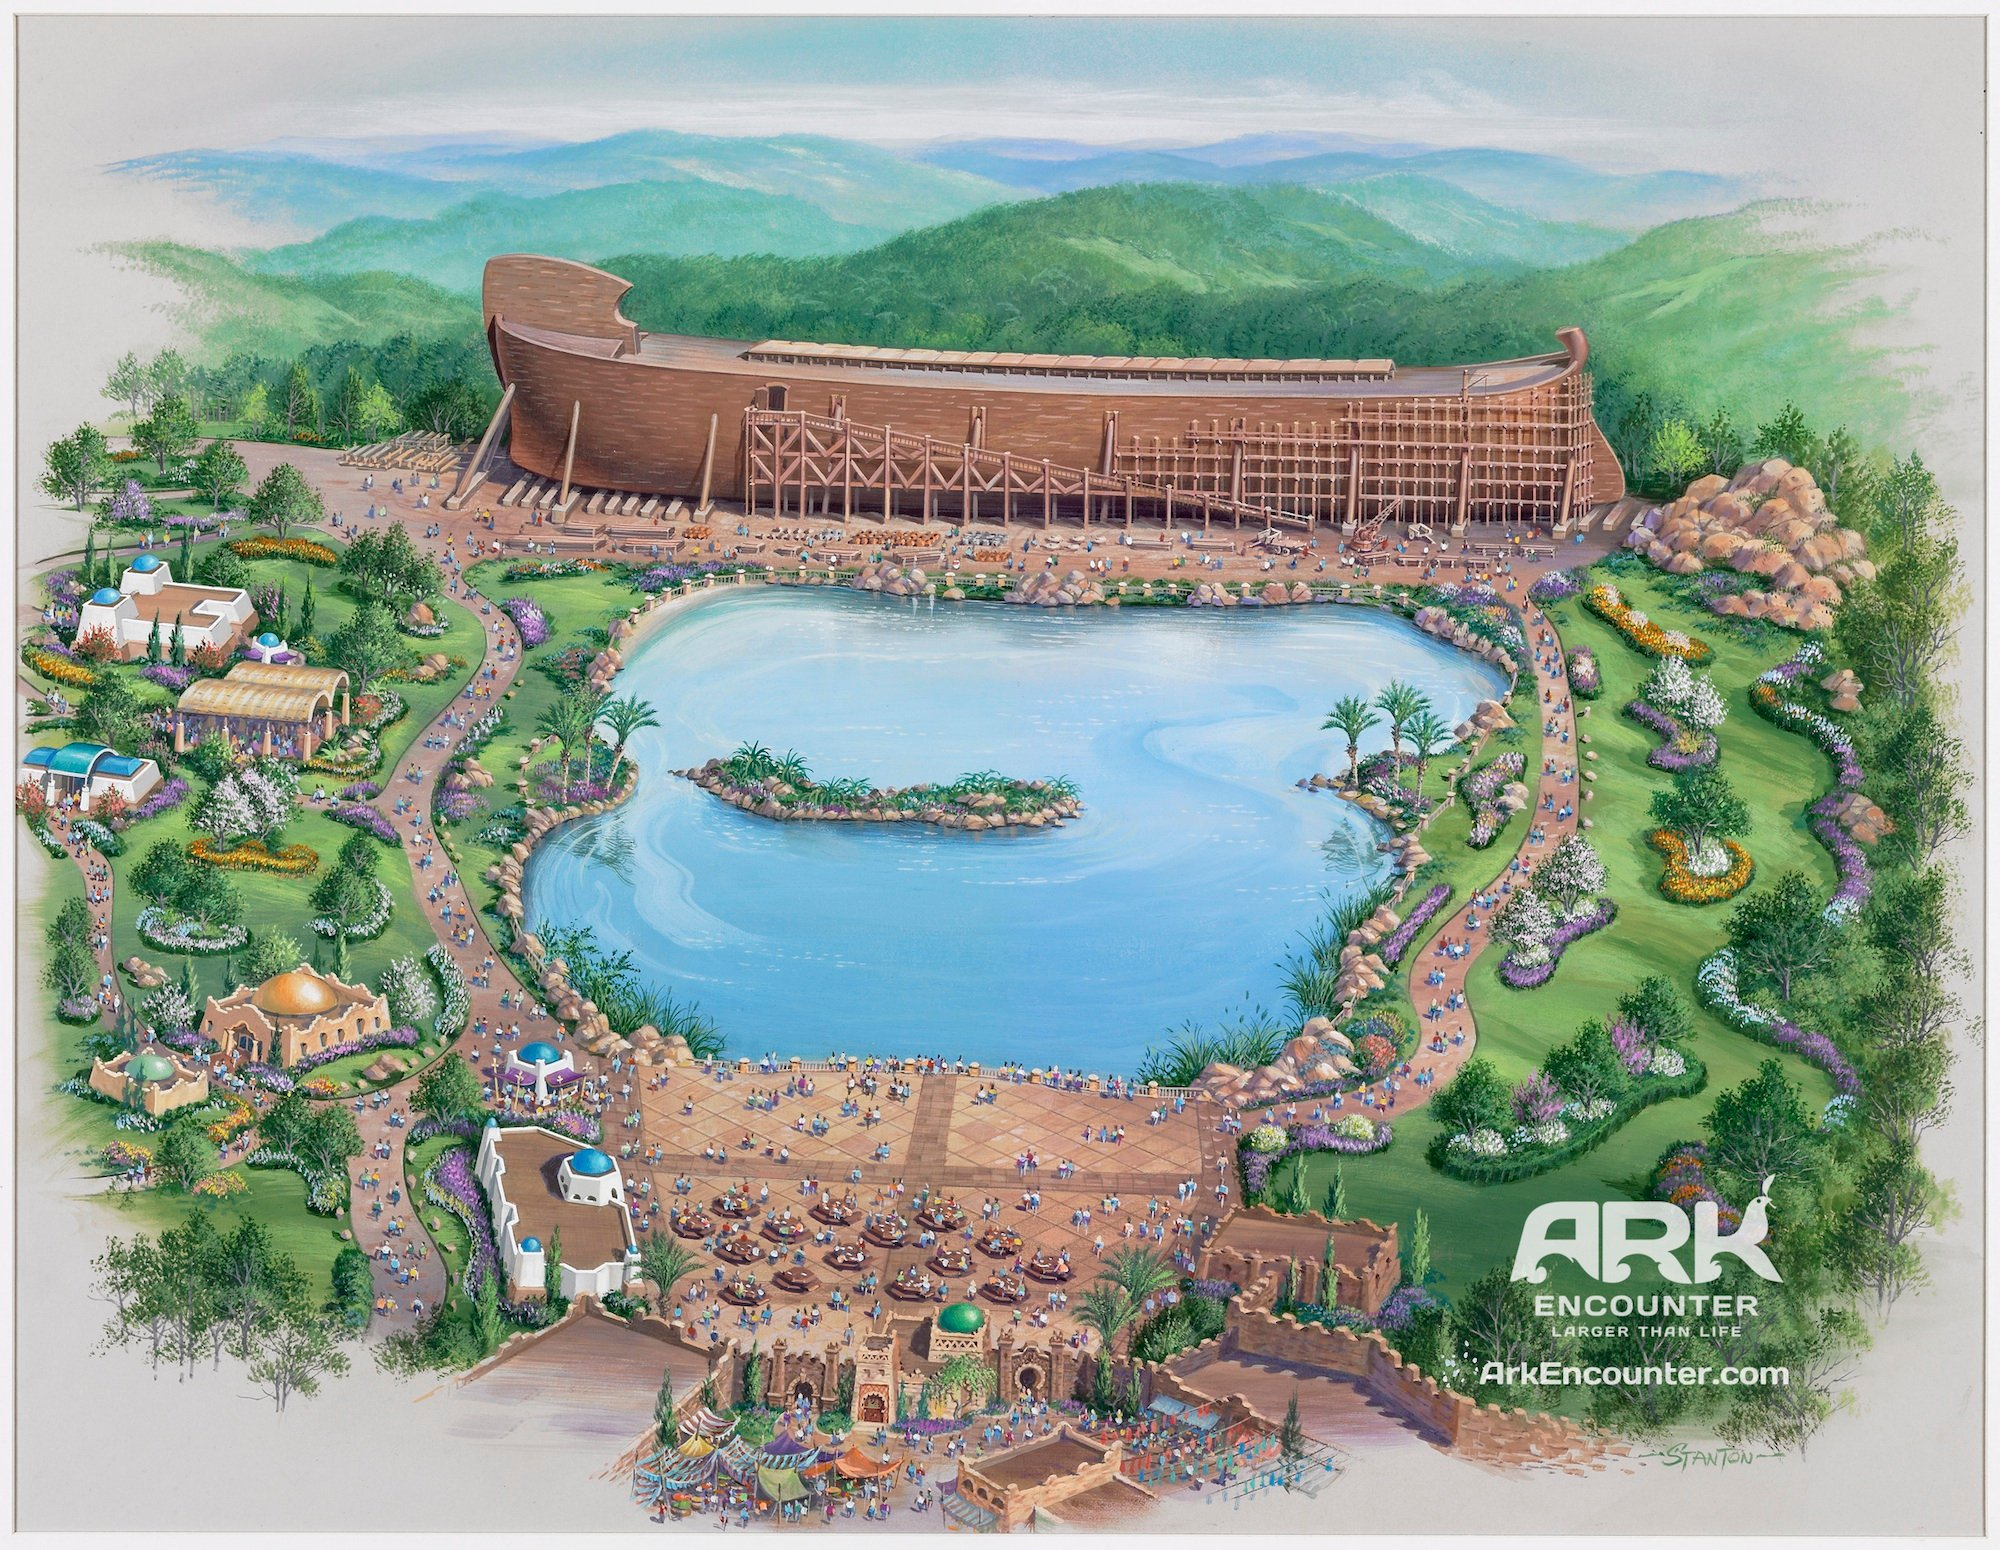 The proposed Ark Encounter theme park in Petersburg, Ky. Photo courtesy Ark Encounter/A Larry Ross Communications.